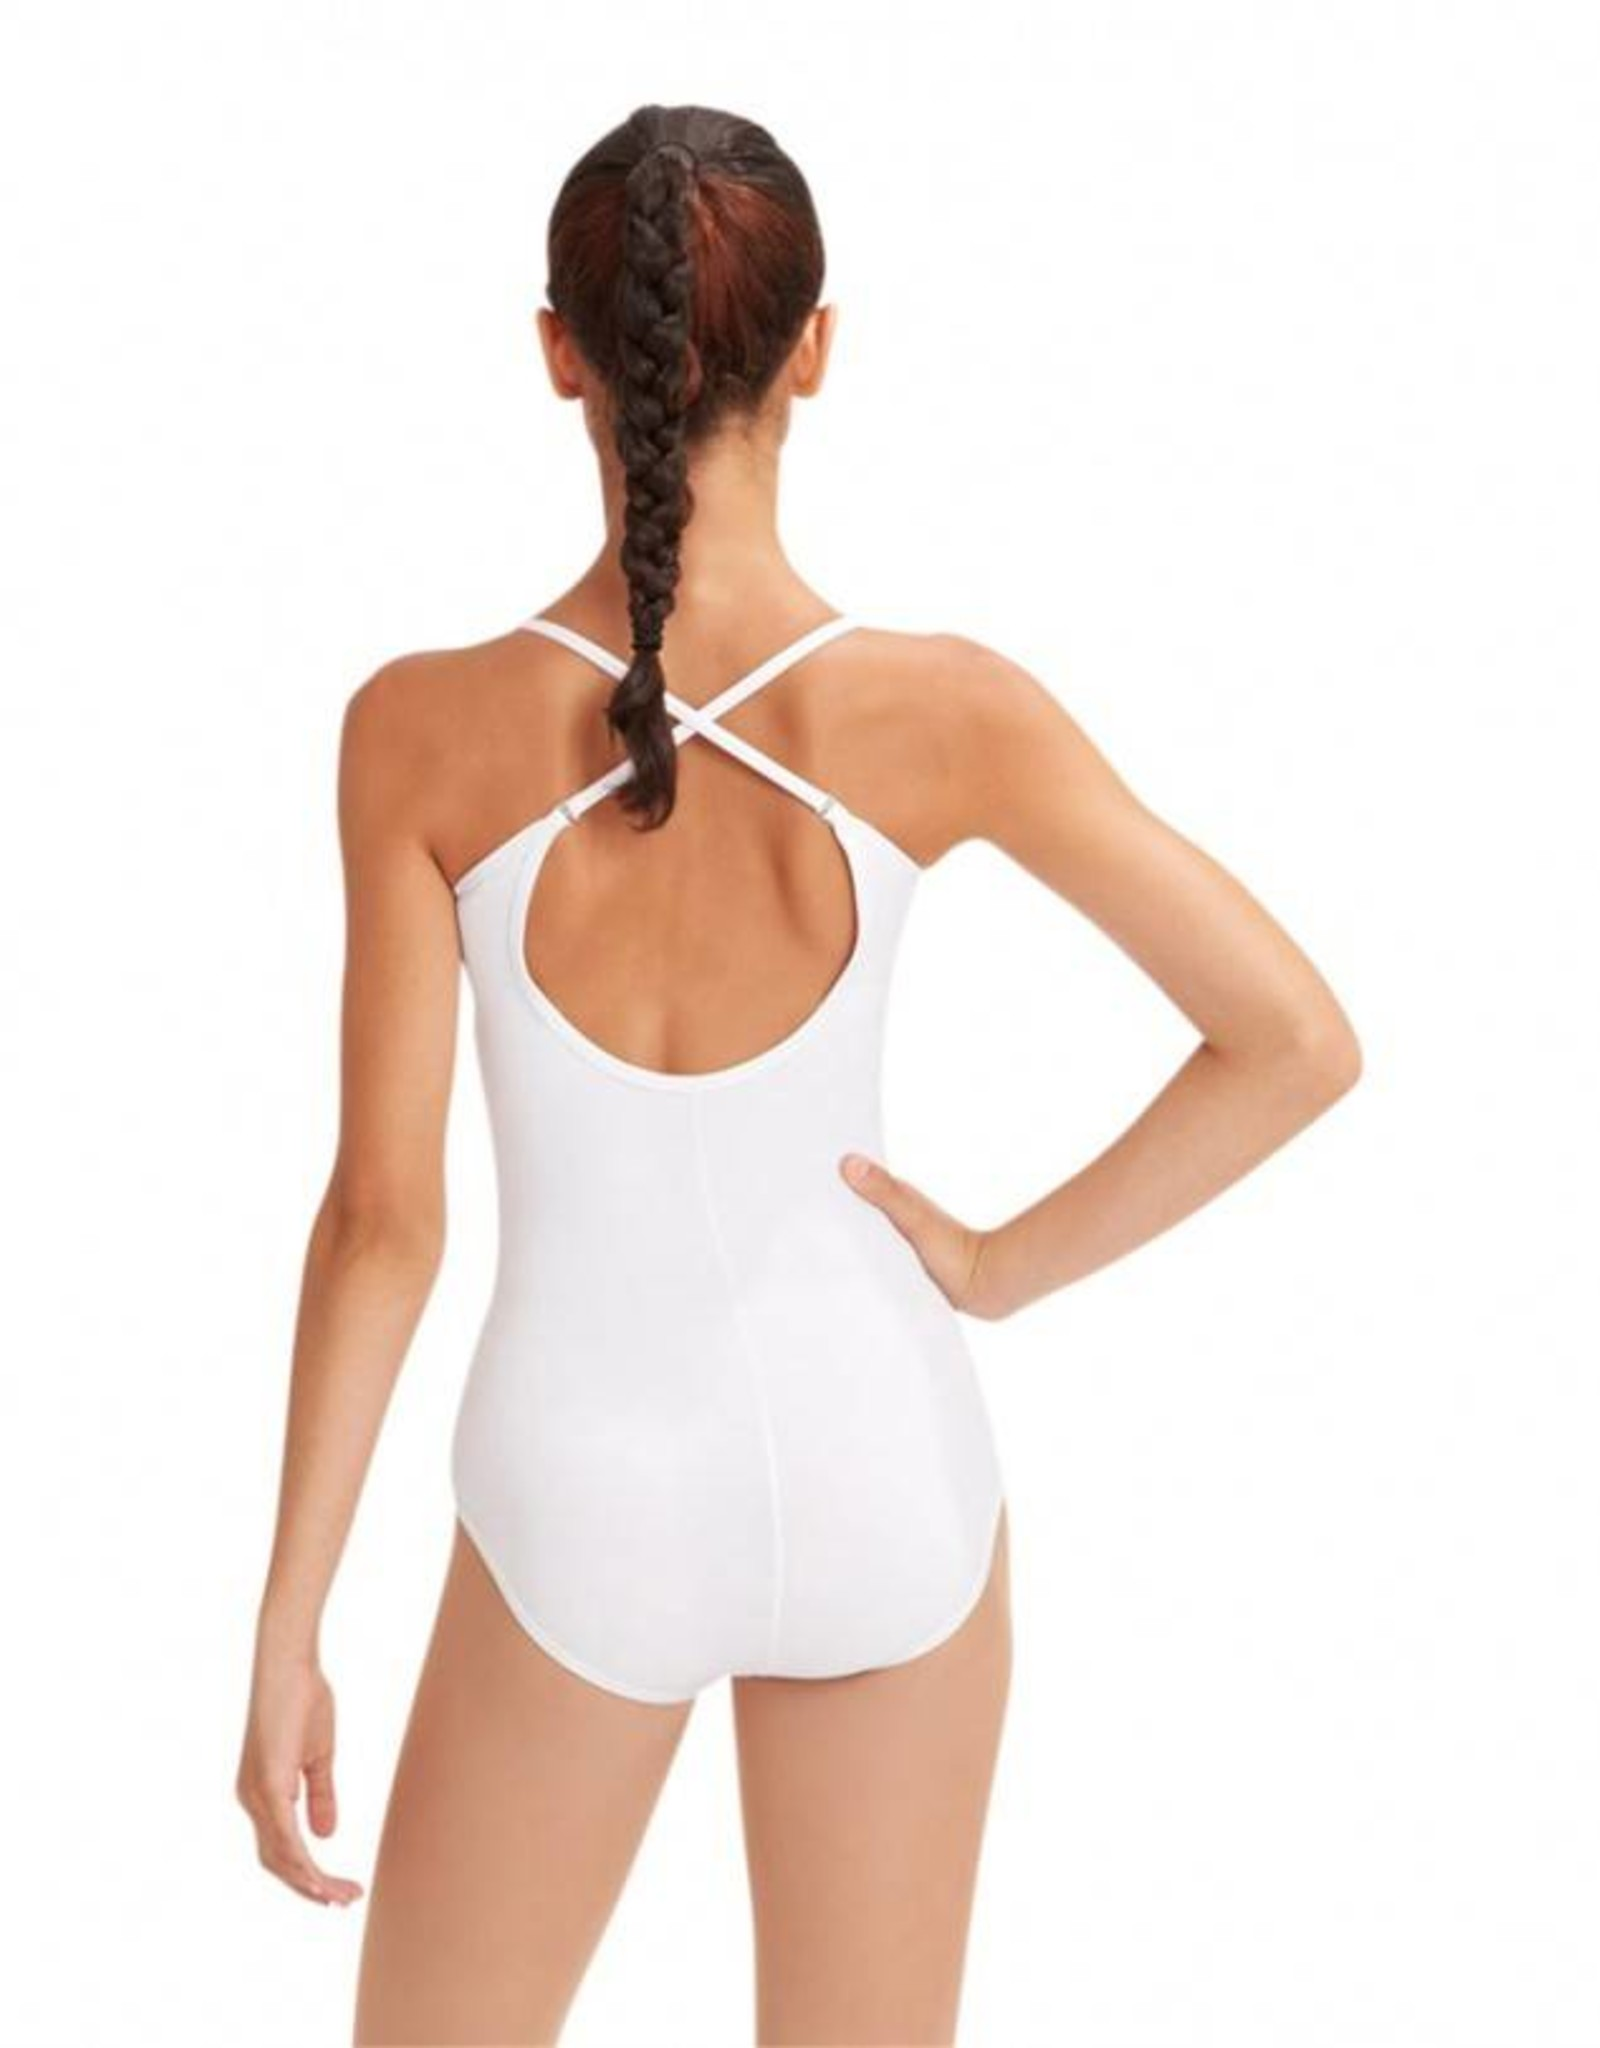 Capezio TB1420 Adult Cami Leotard w/Adjustable Straps